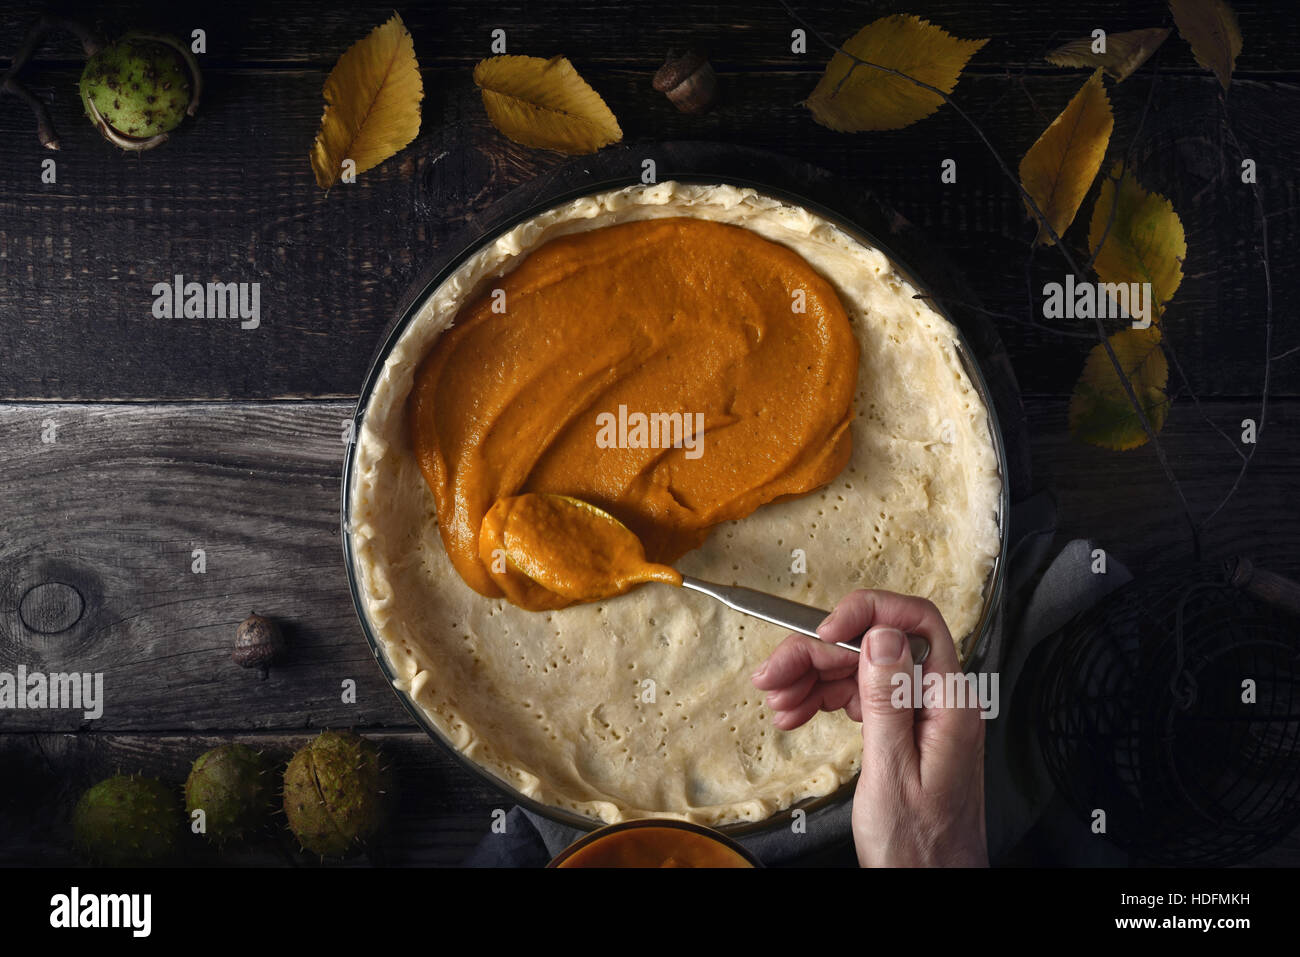 Putting  pumpkin puree on the dough for pumpkin pie on the wooden table - Stock Image